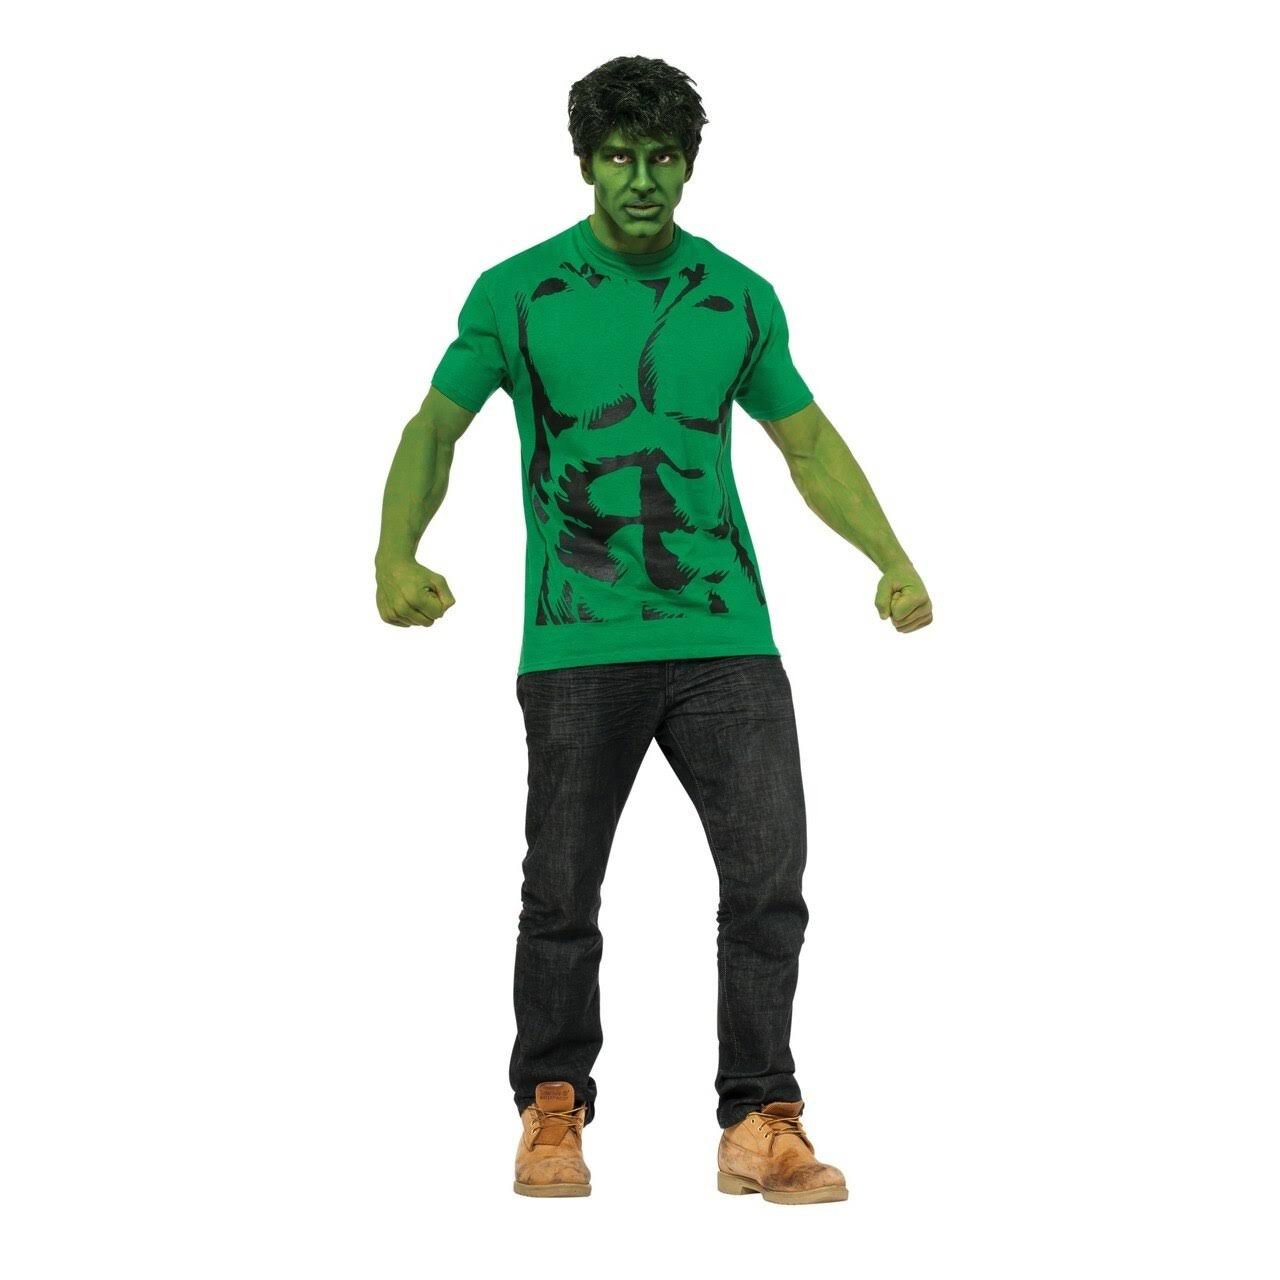 Marvel Hulk T-Shirt and Wig Adult Costume Medium